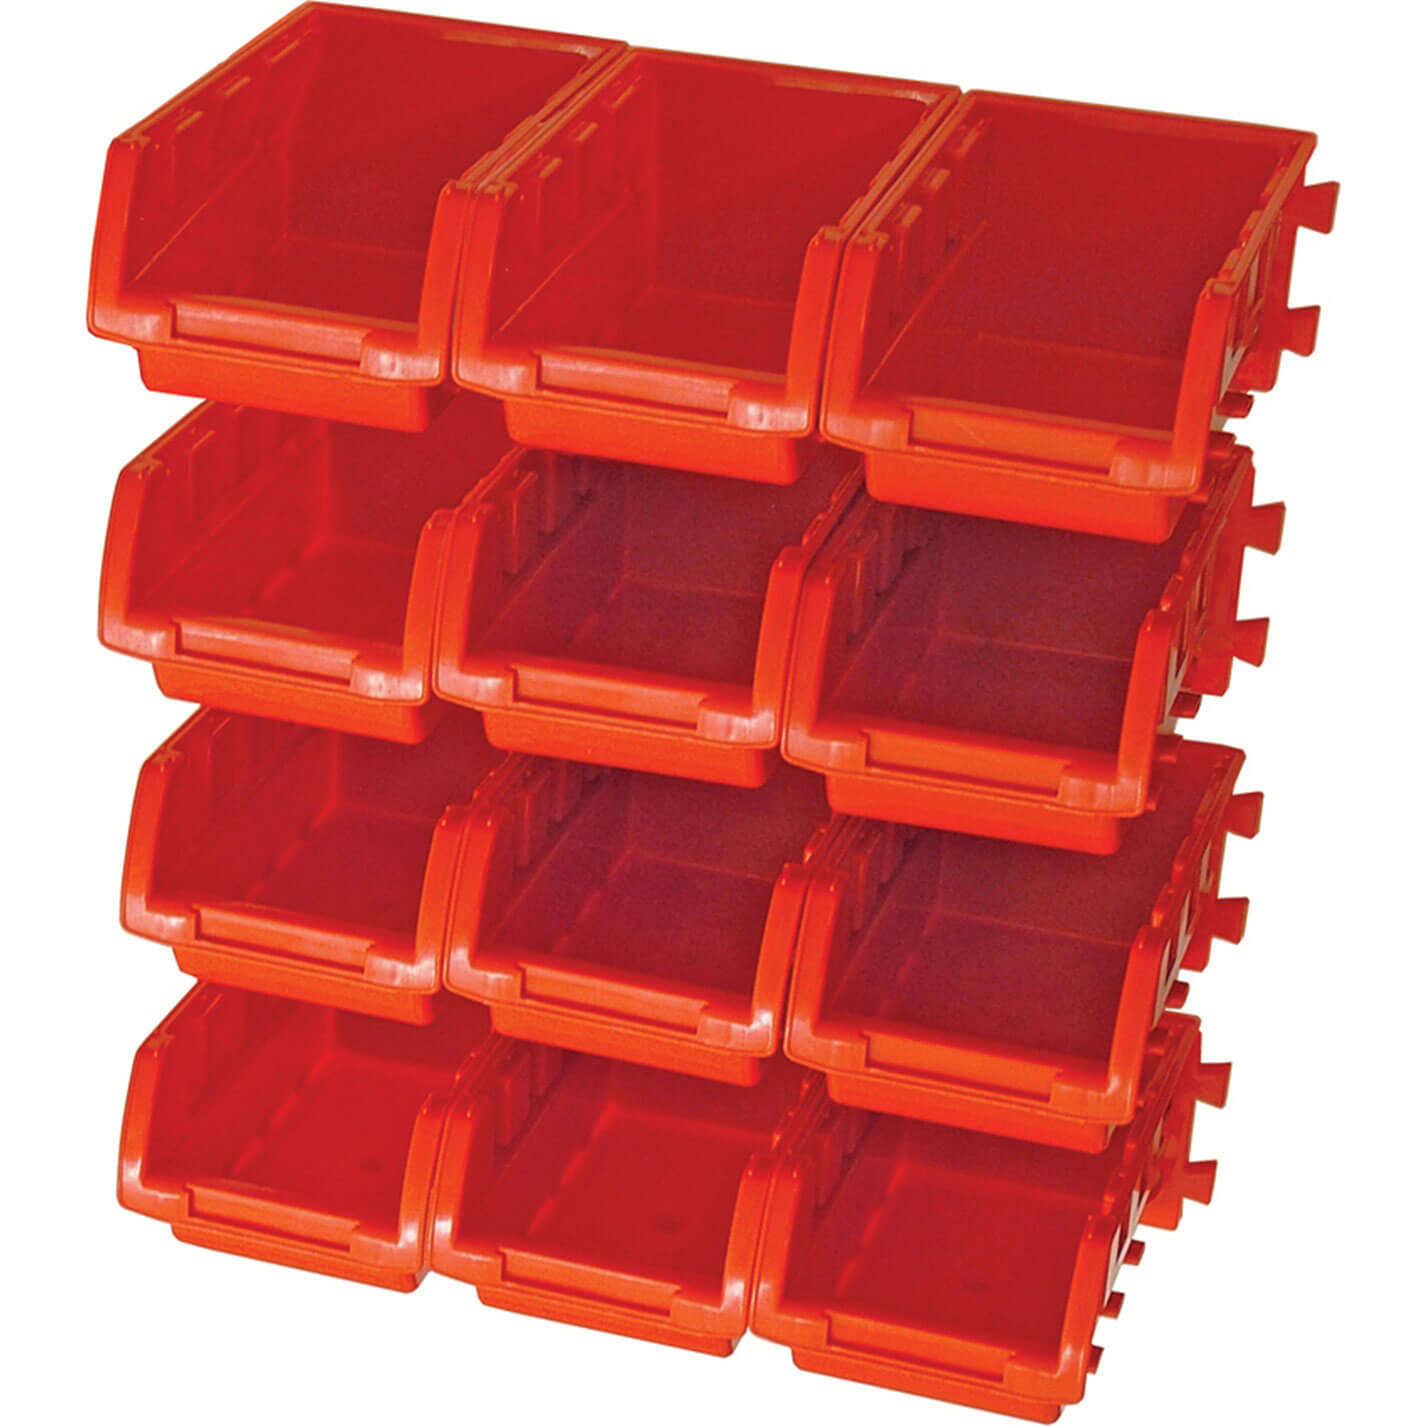 Image of Faithfull 12 Piece Plastic Storage Bin Set with Wall Mounting Rails